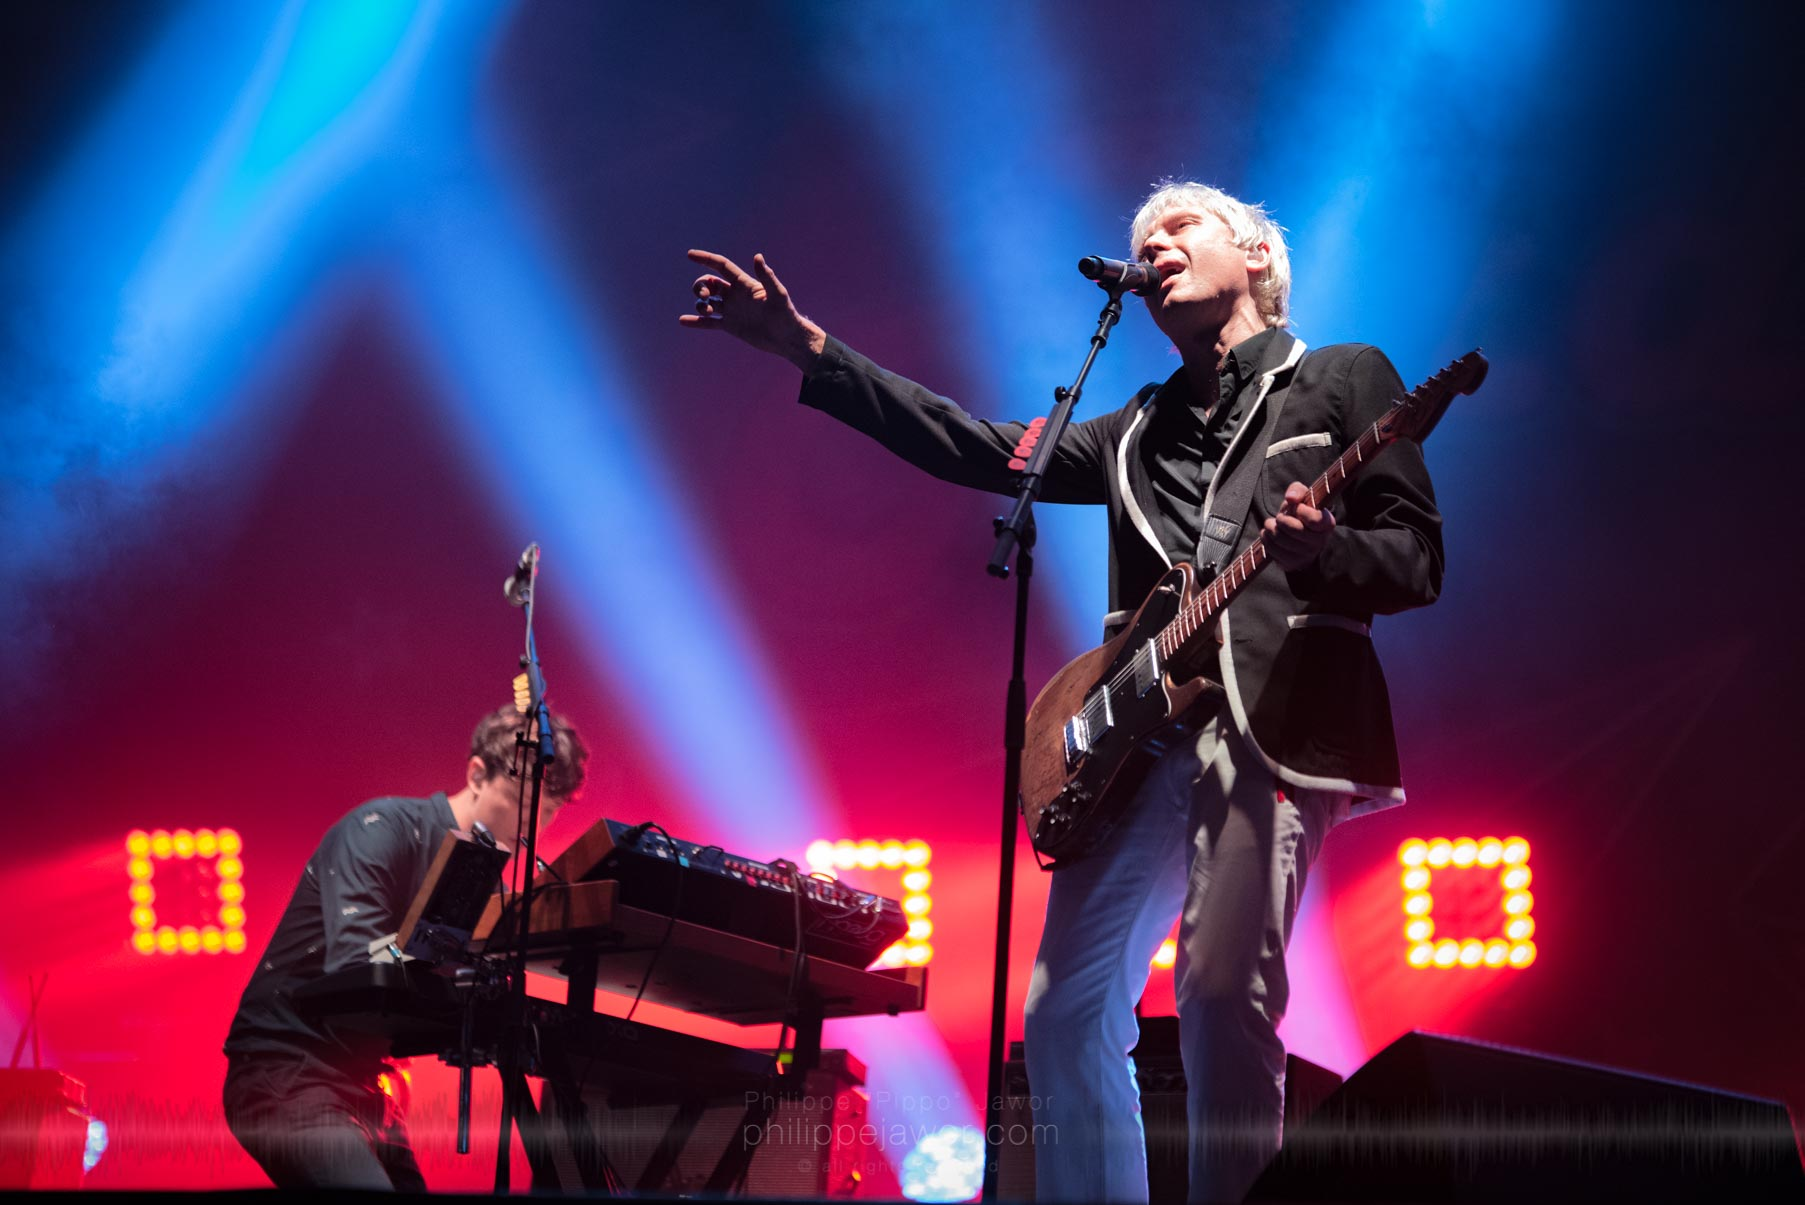 The Scottish rock band Franz Ferdinand, live at Rock en Seine festival, Paris, France, August 2017.  On assignement for ZYVA Magazine All rights reserved.